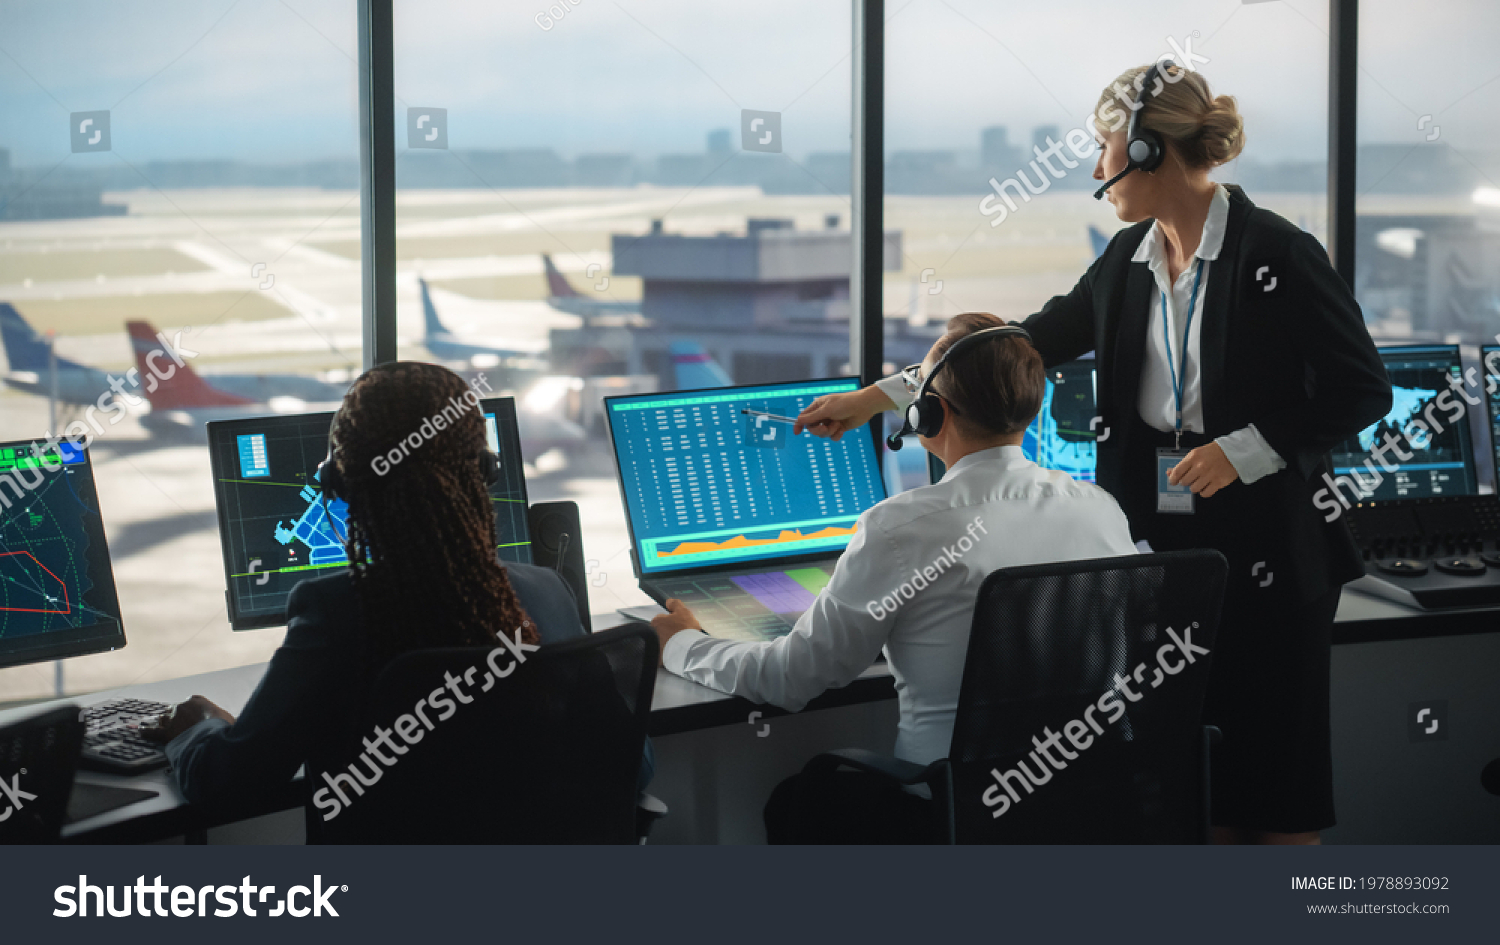 Female and Male Air Traffic Controllers with Headsets Talk in Airport Tower. Office Room is Full of Desktop Computer Displays with Navigation Screens, Airplane Departure and Arrival Data for the Team. #1978893092